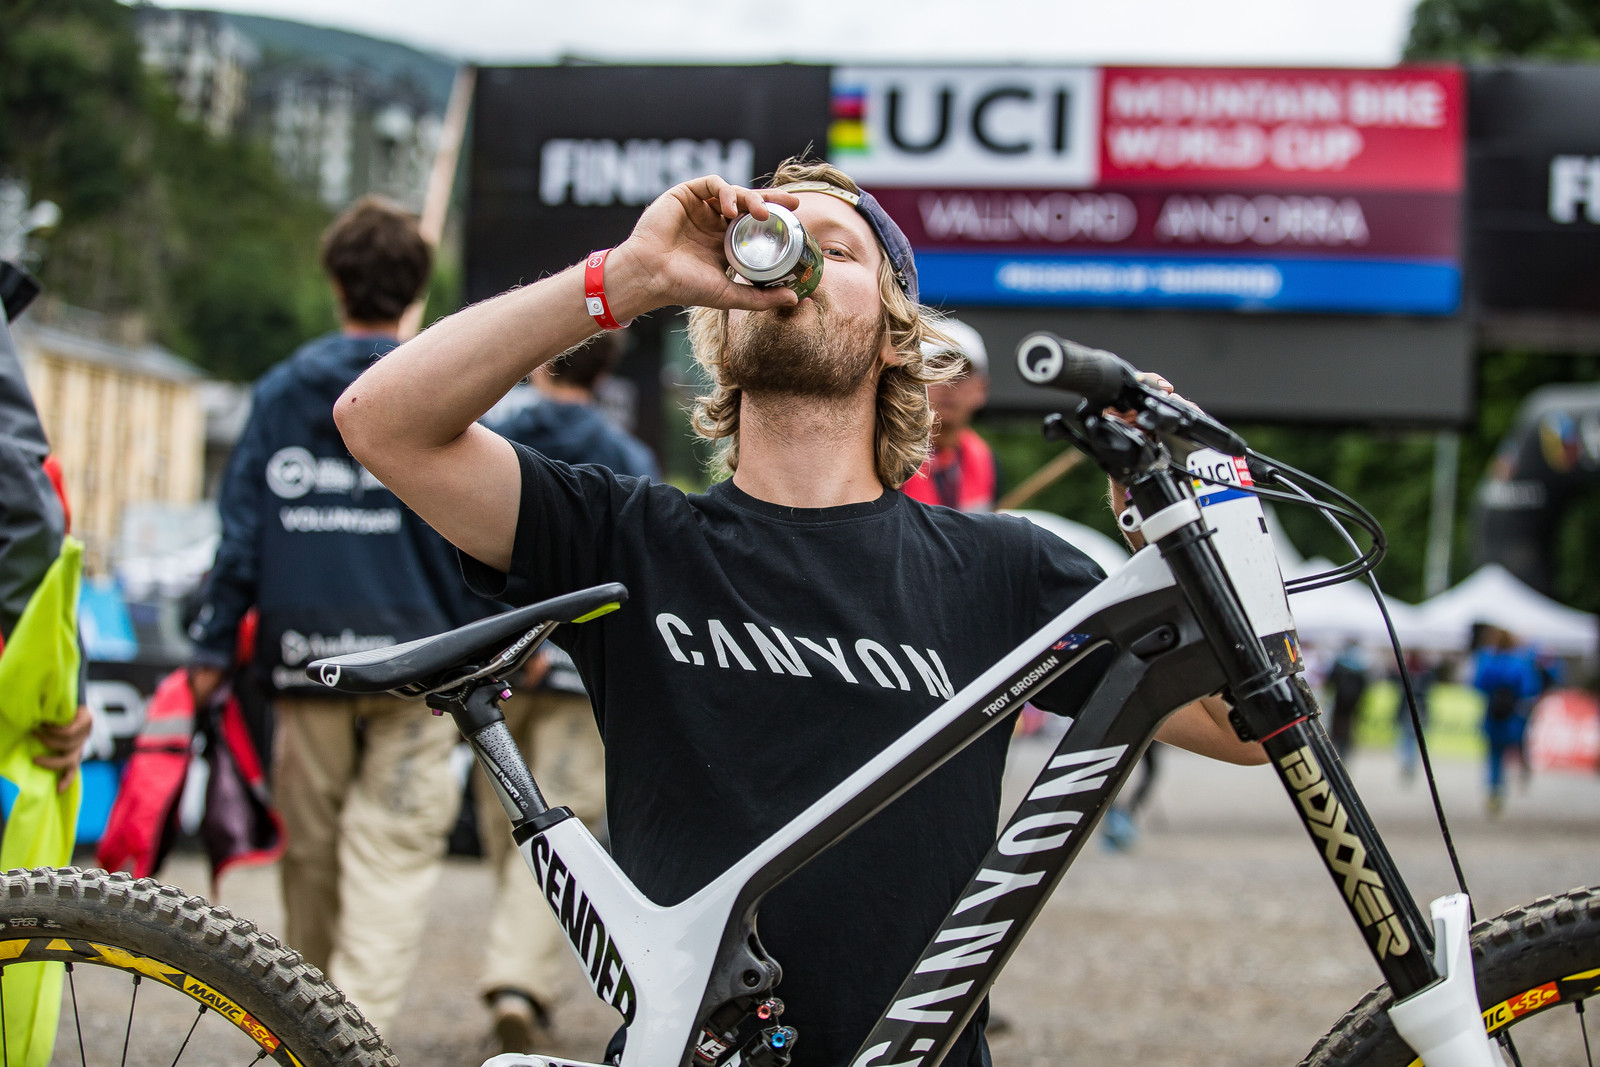 Troy's Mechanic, Aaron Pelttari - WINNING BIKE: Troy Brosnan's Canyon Sender - Mountain Biking Pictures - Vital MTB